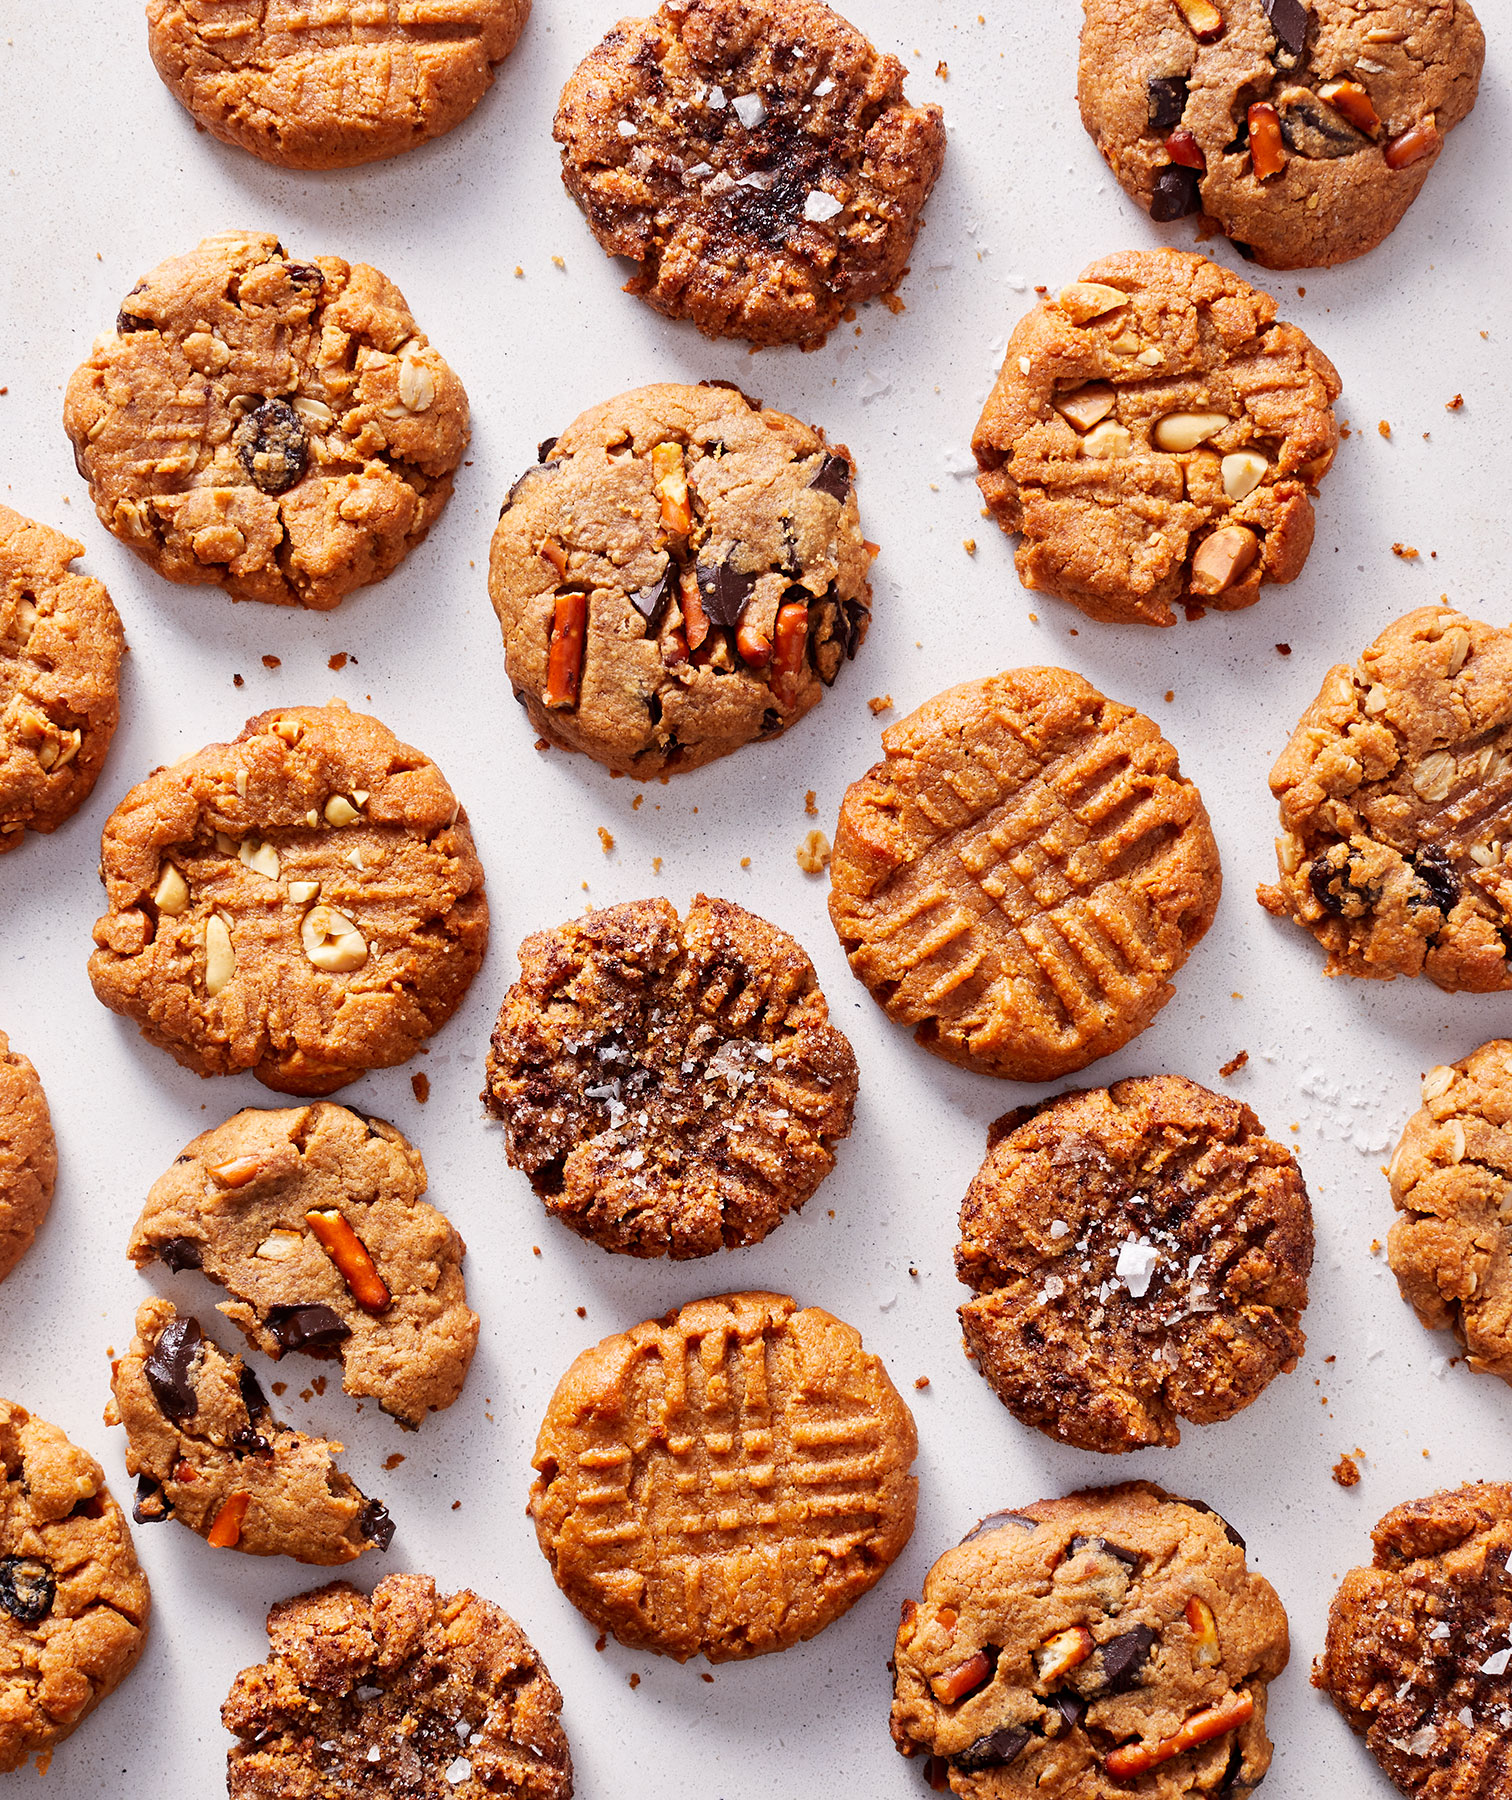 Peanut Butter Cookie Variations